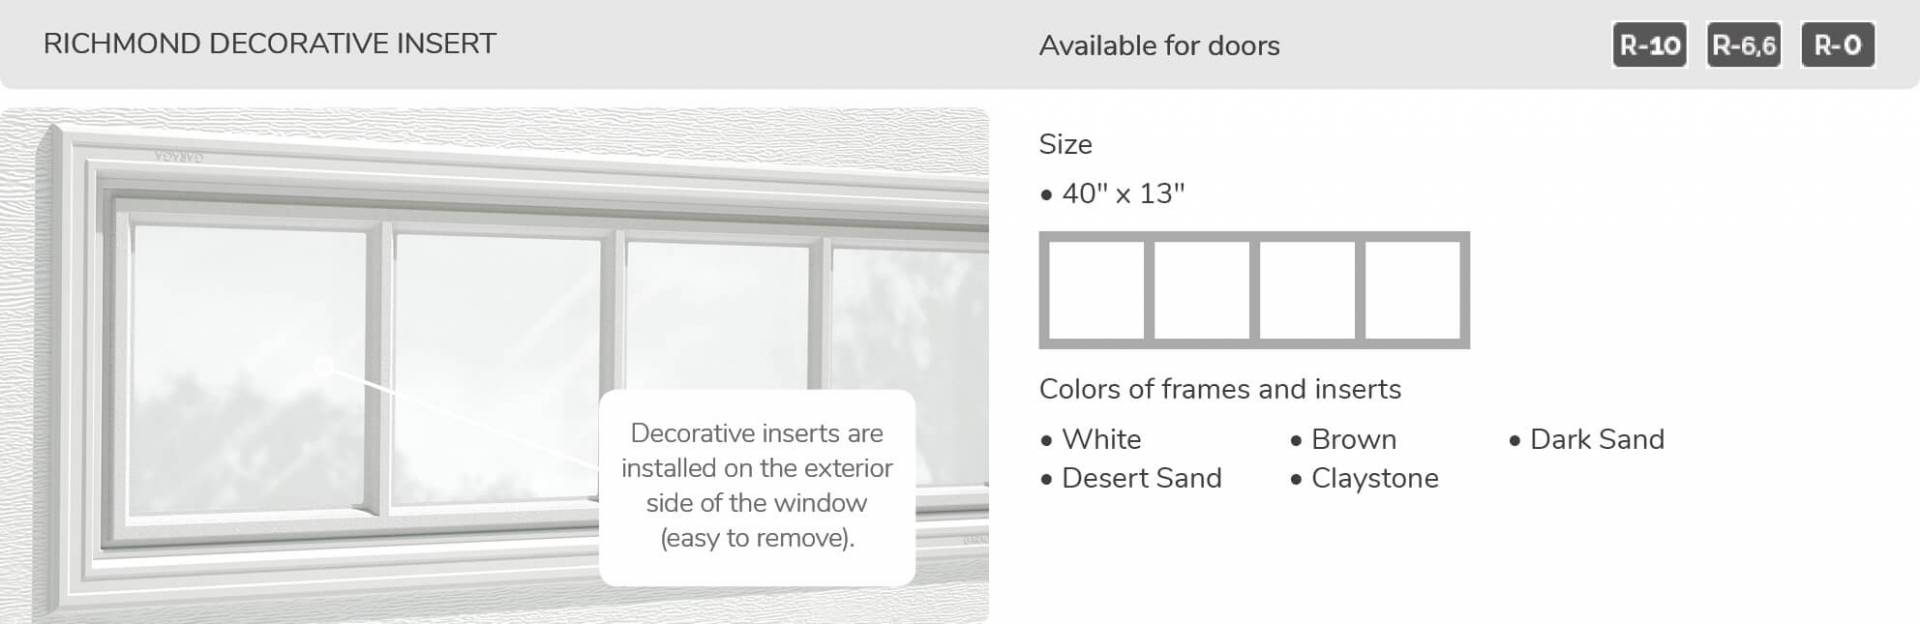 Richmond Decorative Insert, 40' x 13', available for doors R-10, R-6.6, R-0